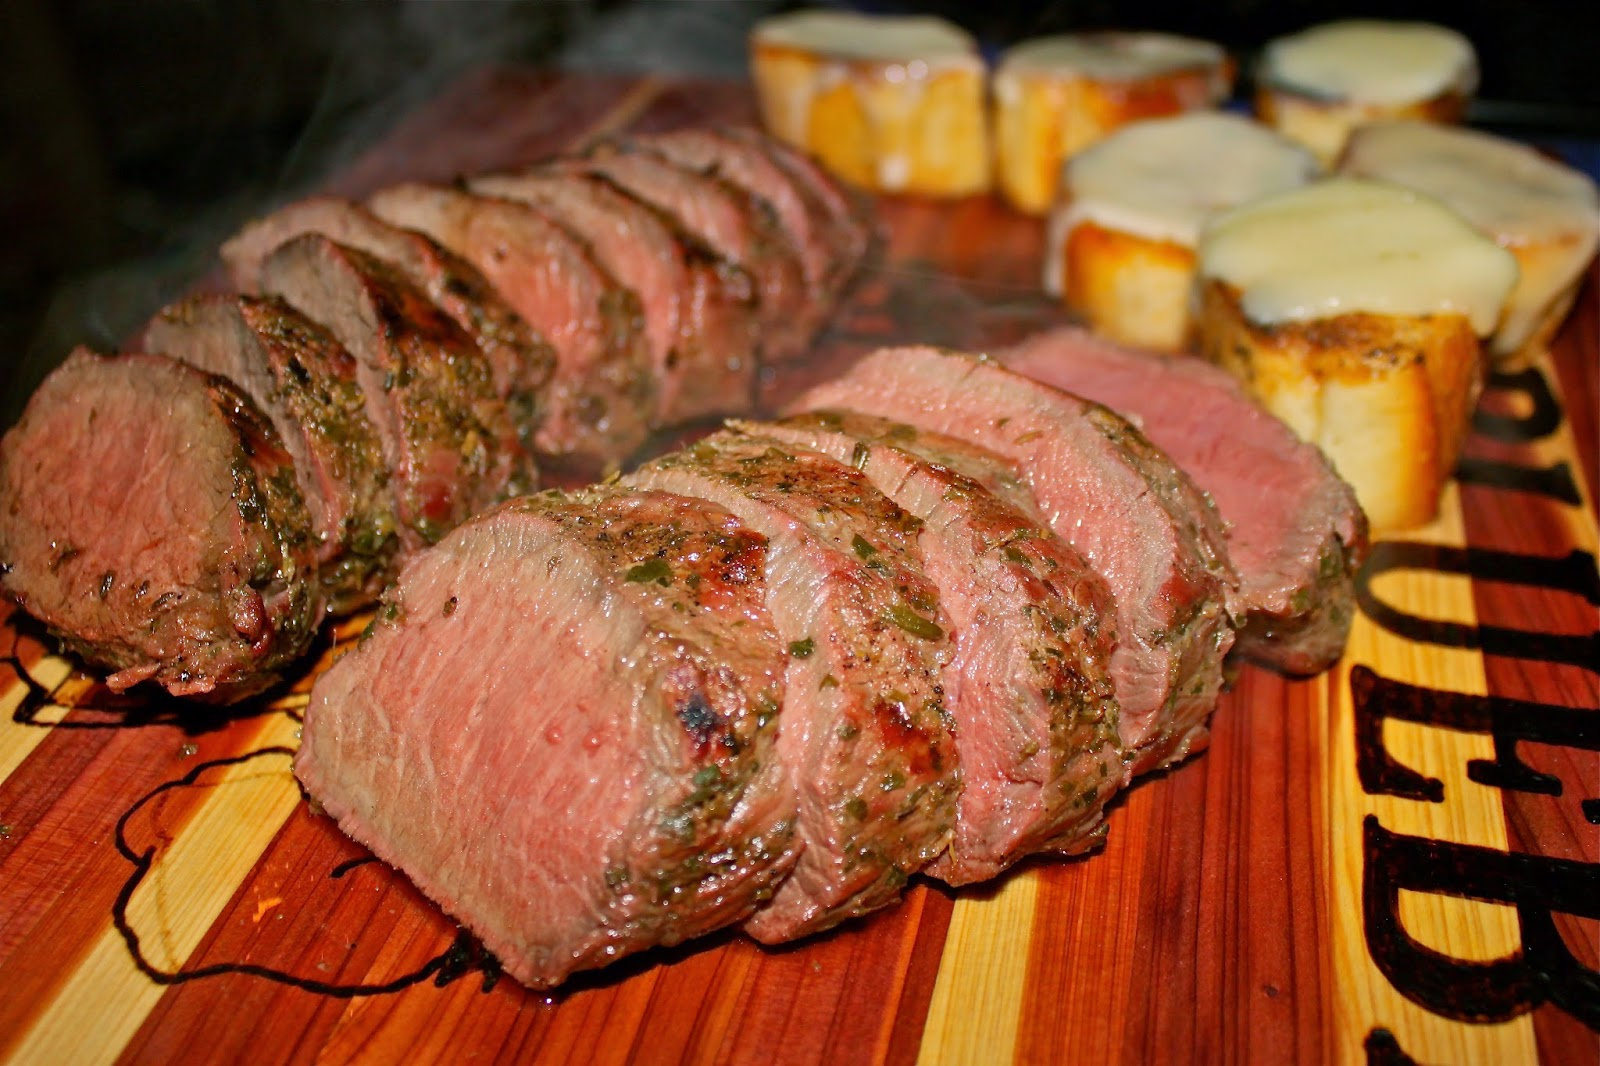 Grilled Venison Loin With Horseradish Cream Sauce Recipes — Dishmaps